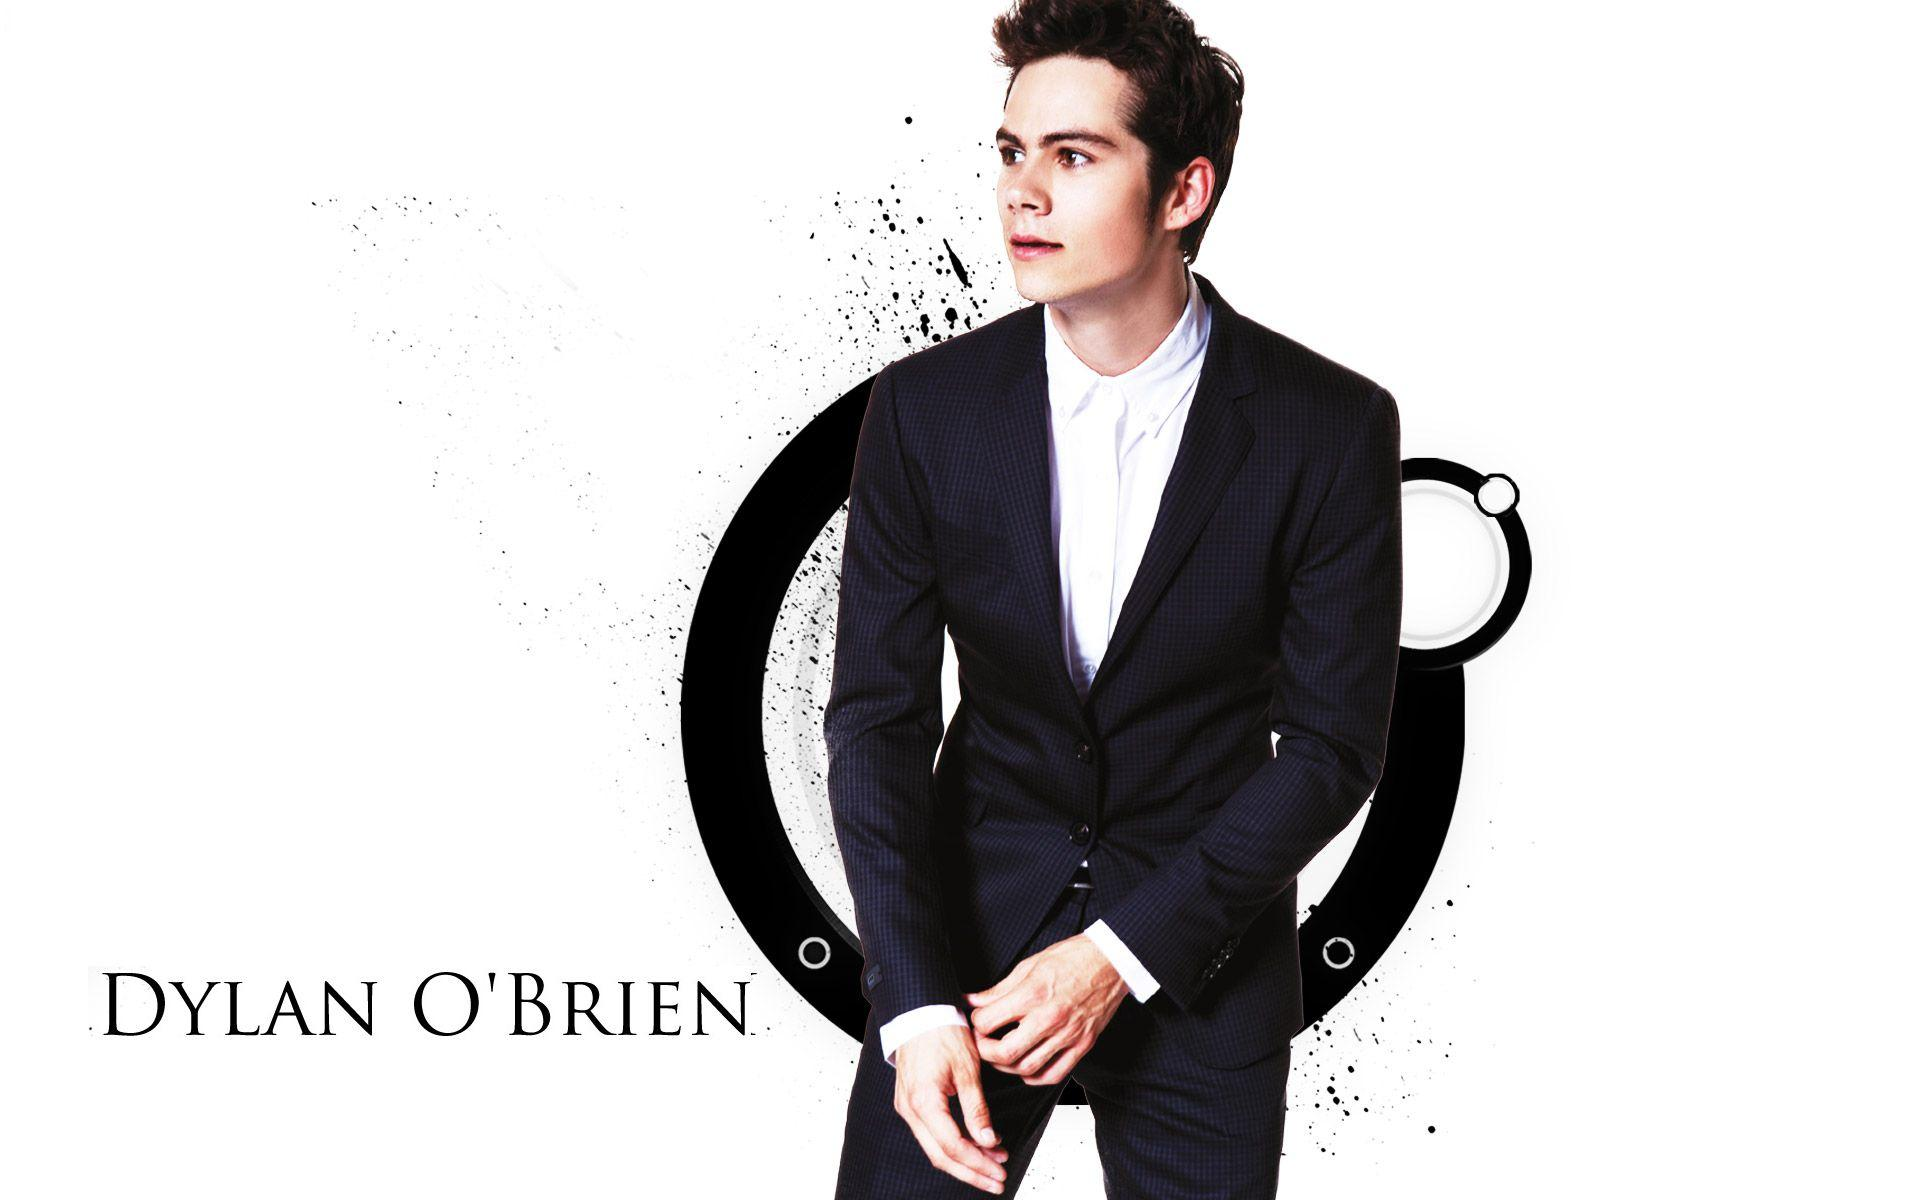 20 Dylan Obrien Wallpapers HD Free Download